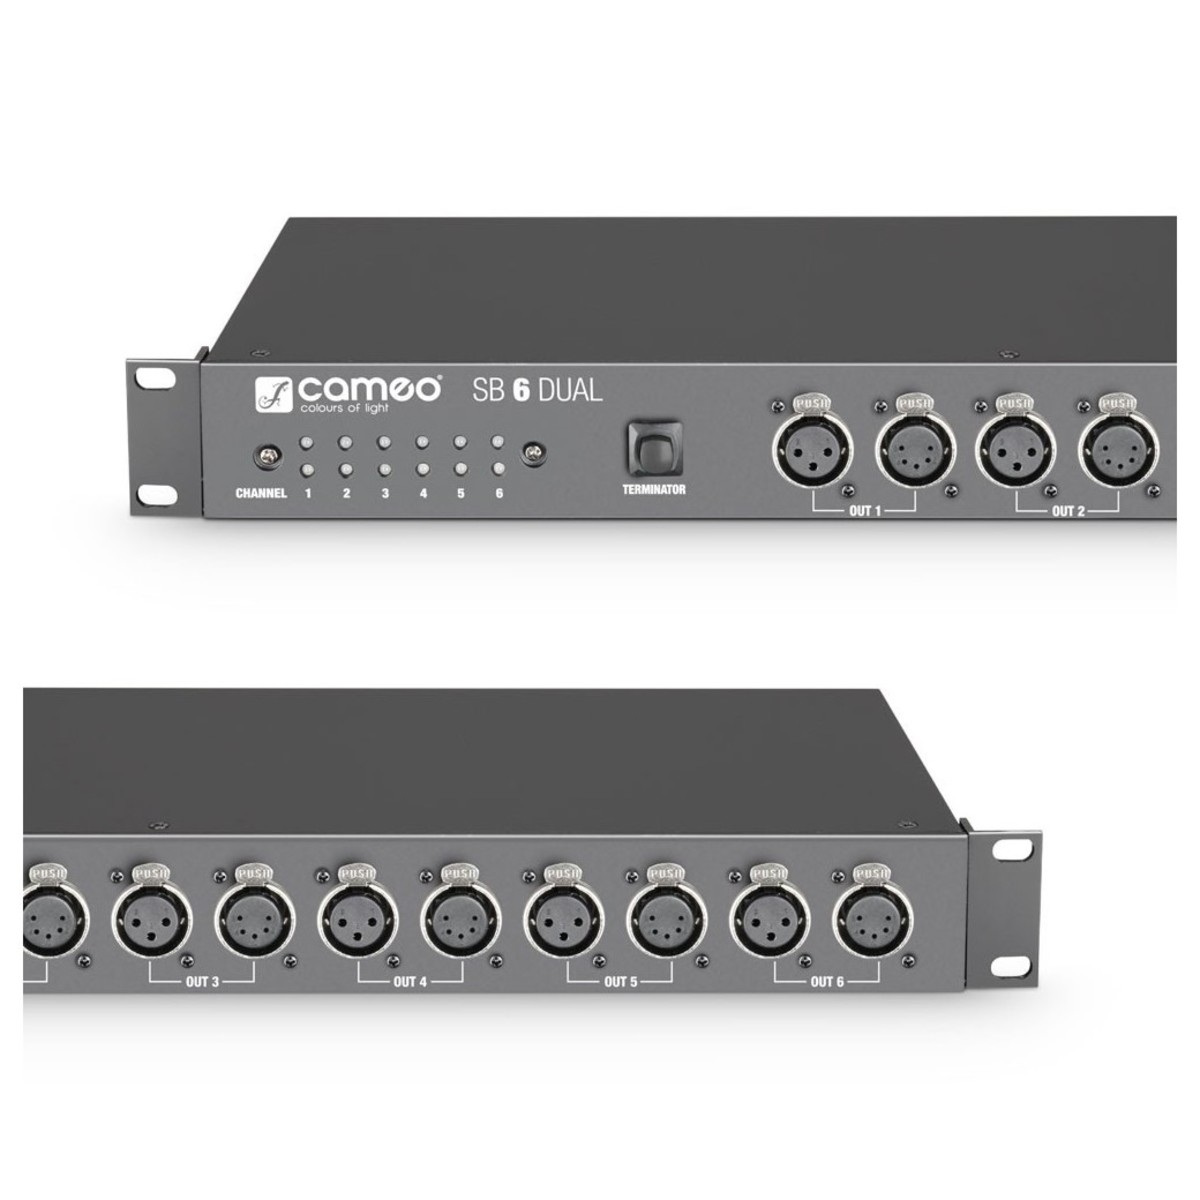 Cameo Sb6 Dual 6 Channel Dmx Splitter And Booster At Gear4musiccom 3 Audio Connectors